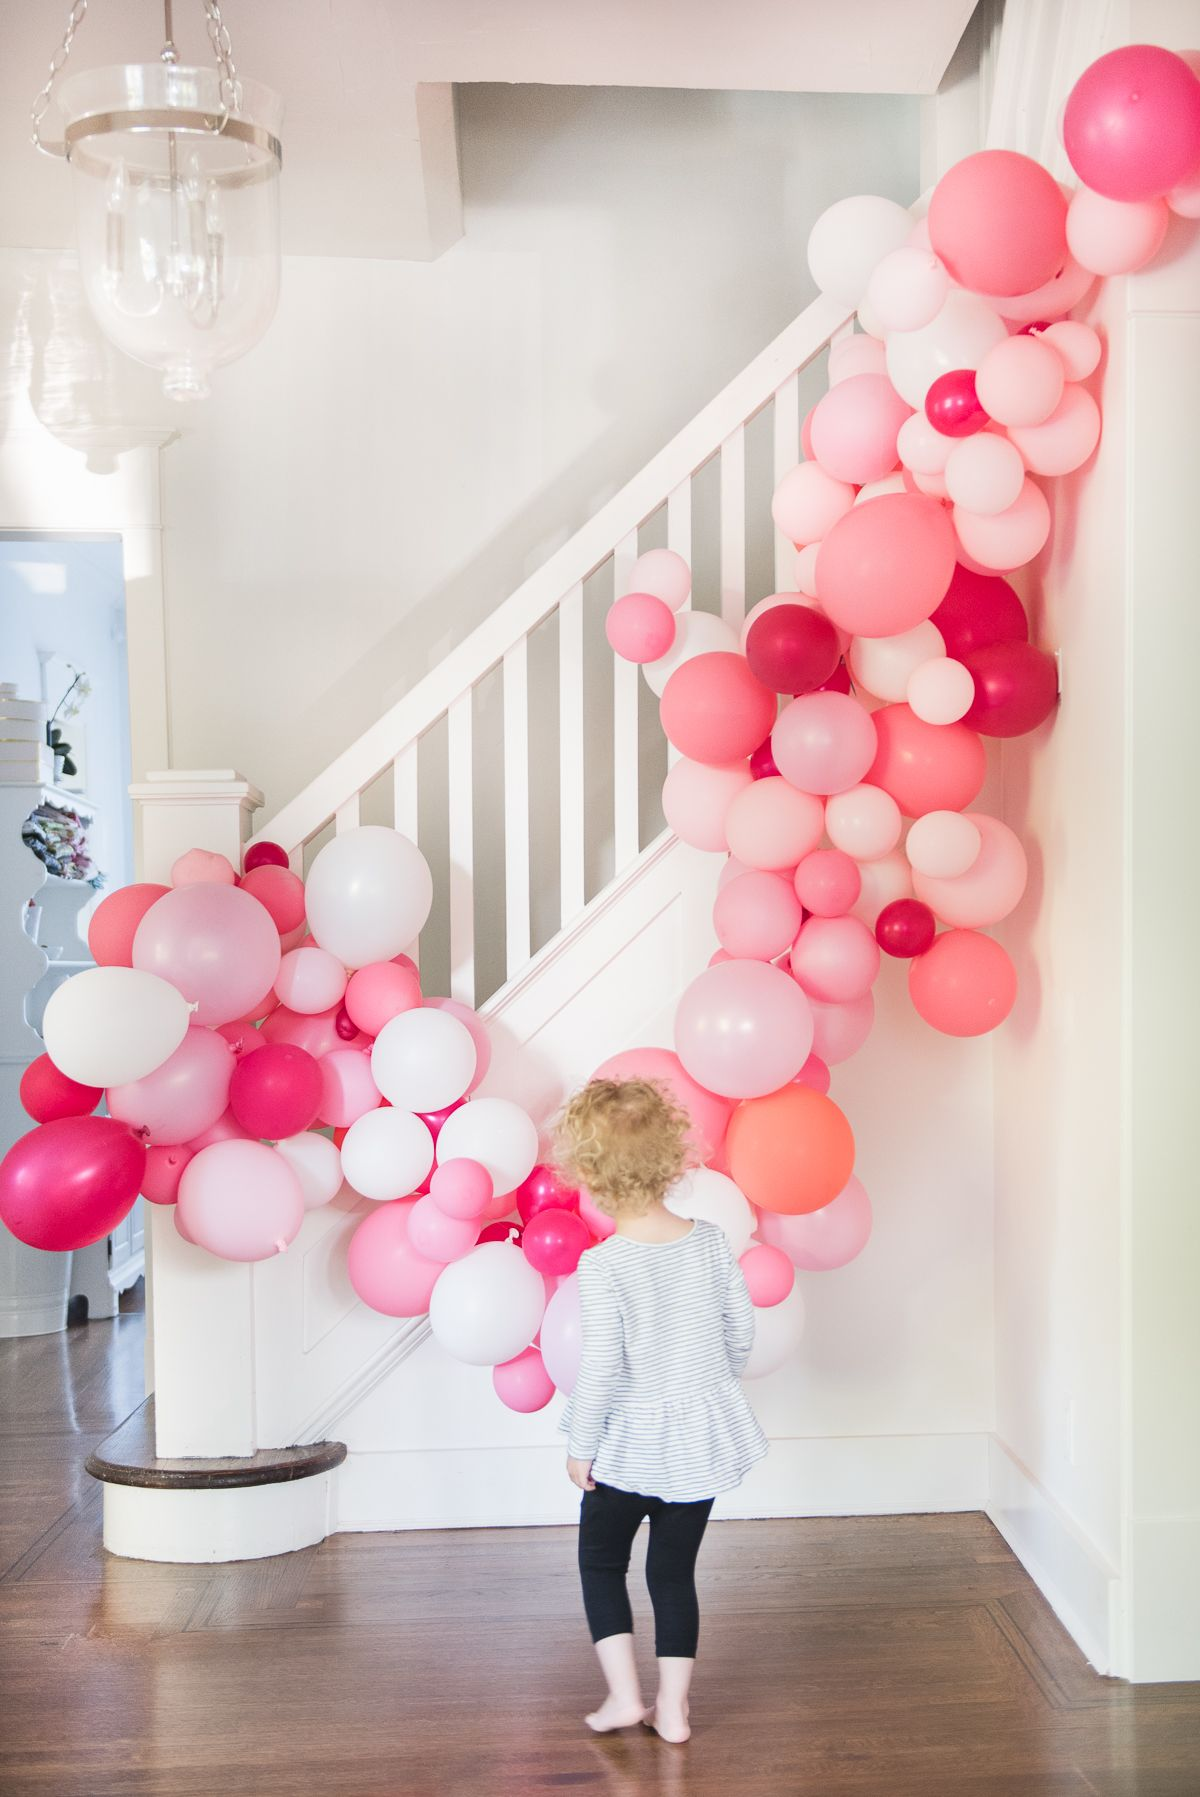 Easy diy balloon arch tutorial without chicken wire for How to build a balloon arch